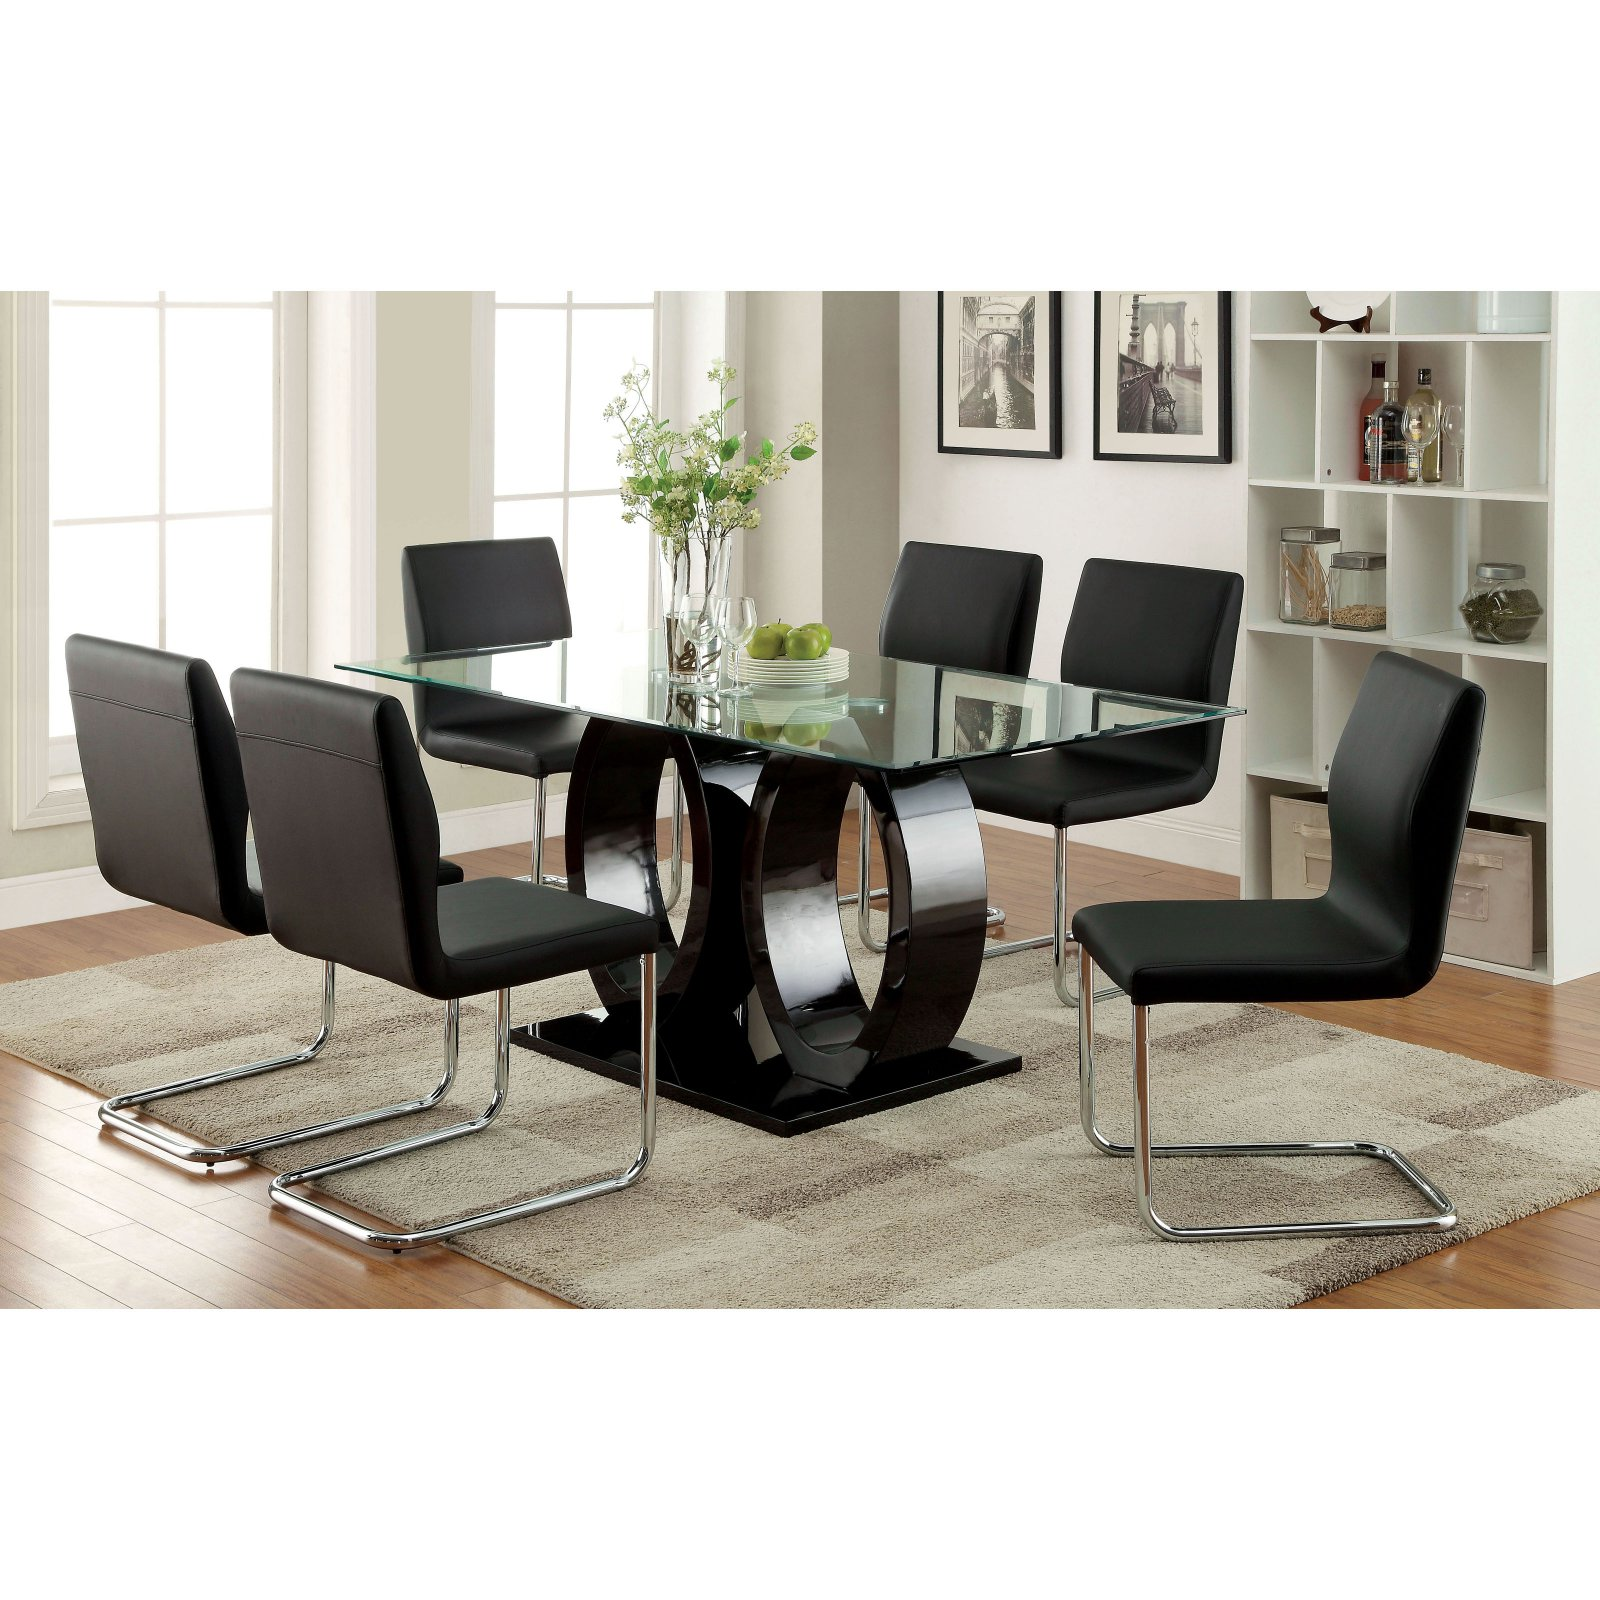 Genial Furniture Of America Damore Contemporary High Gloss Dining Table